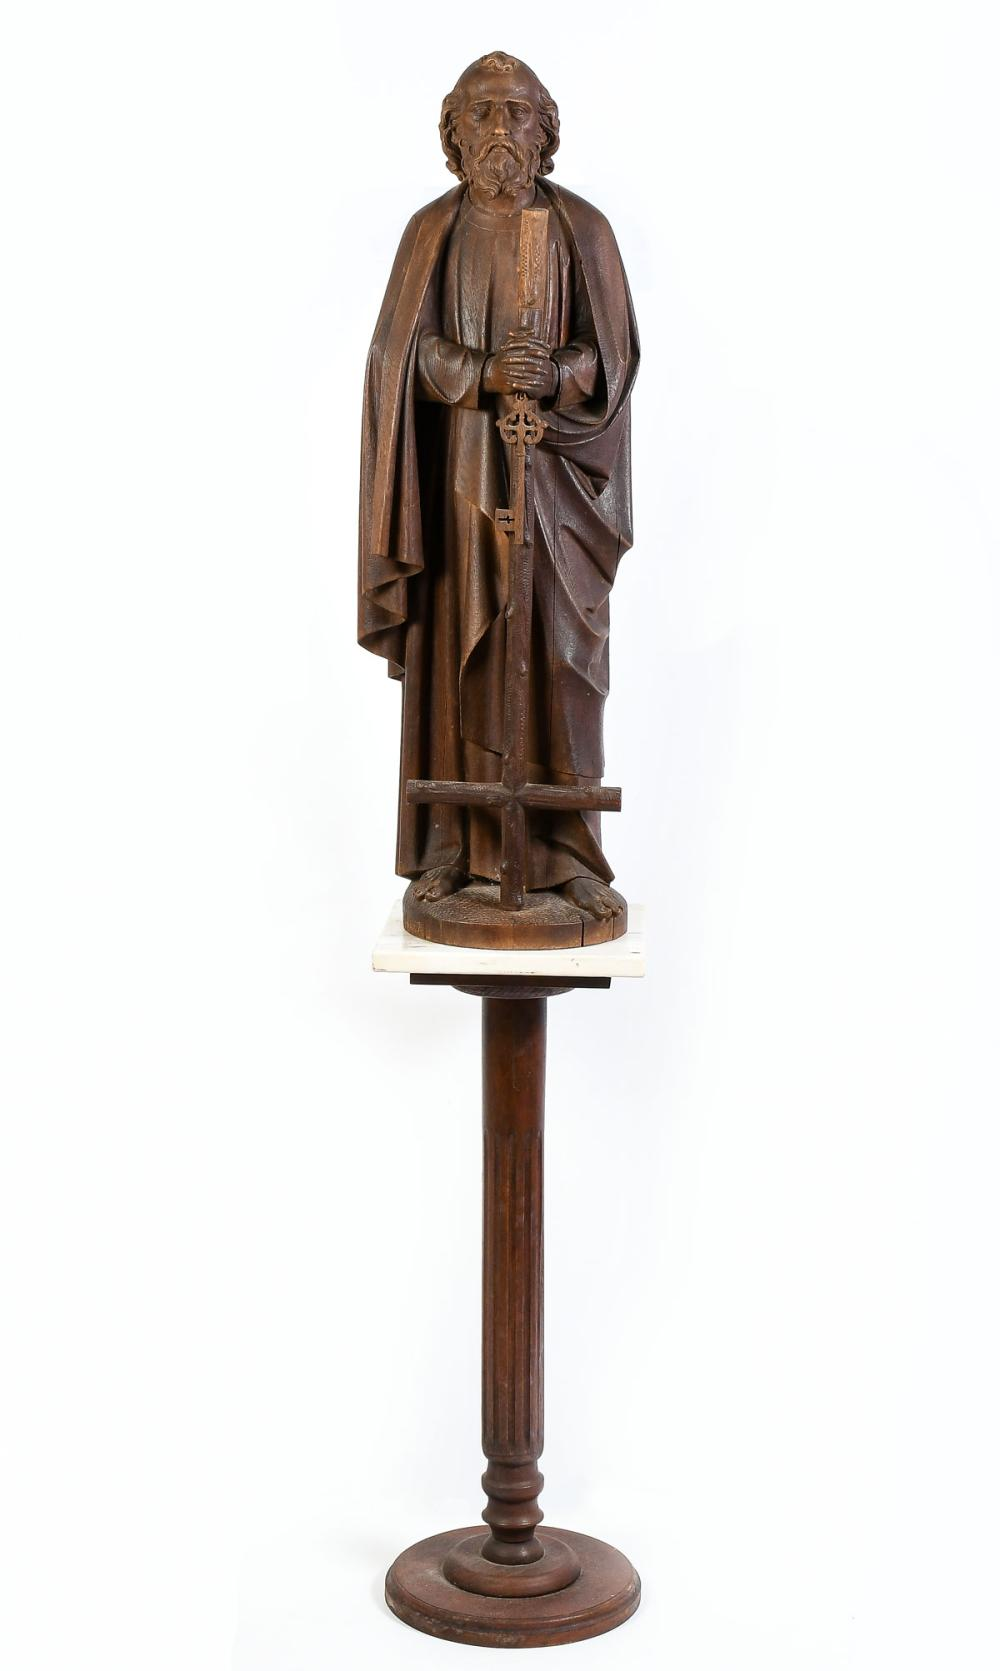 LARGE EXQUISITE WOOD CARVING OF SAINT PETER